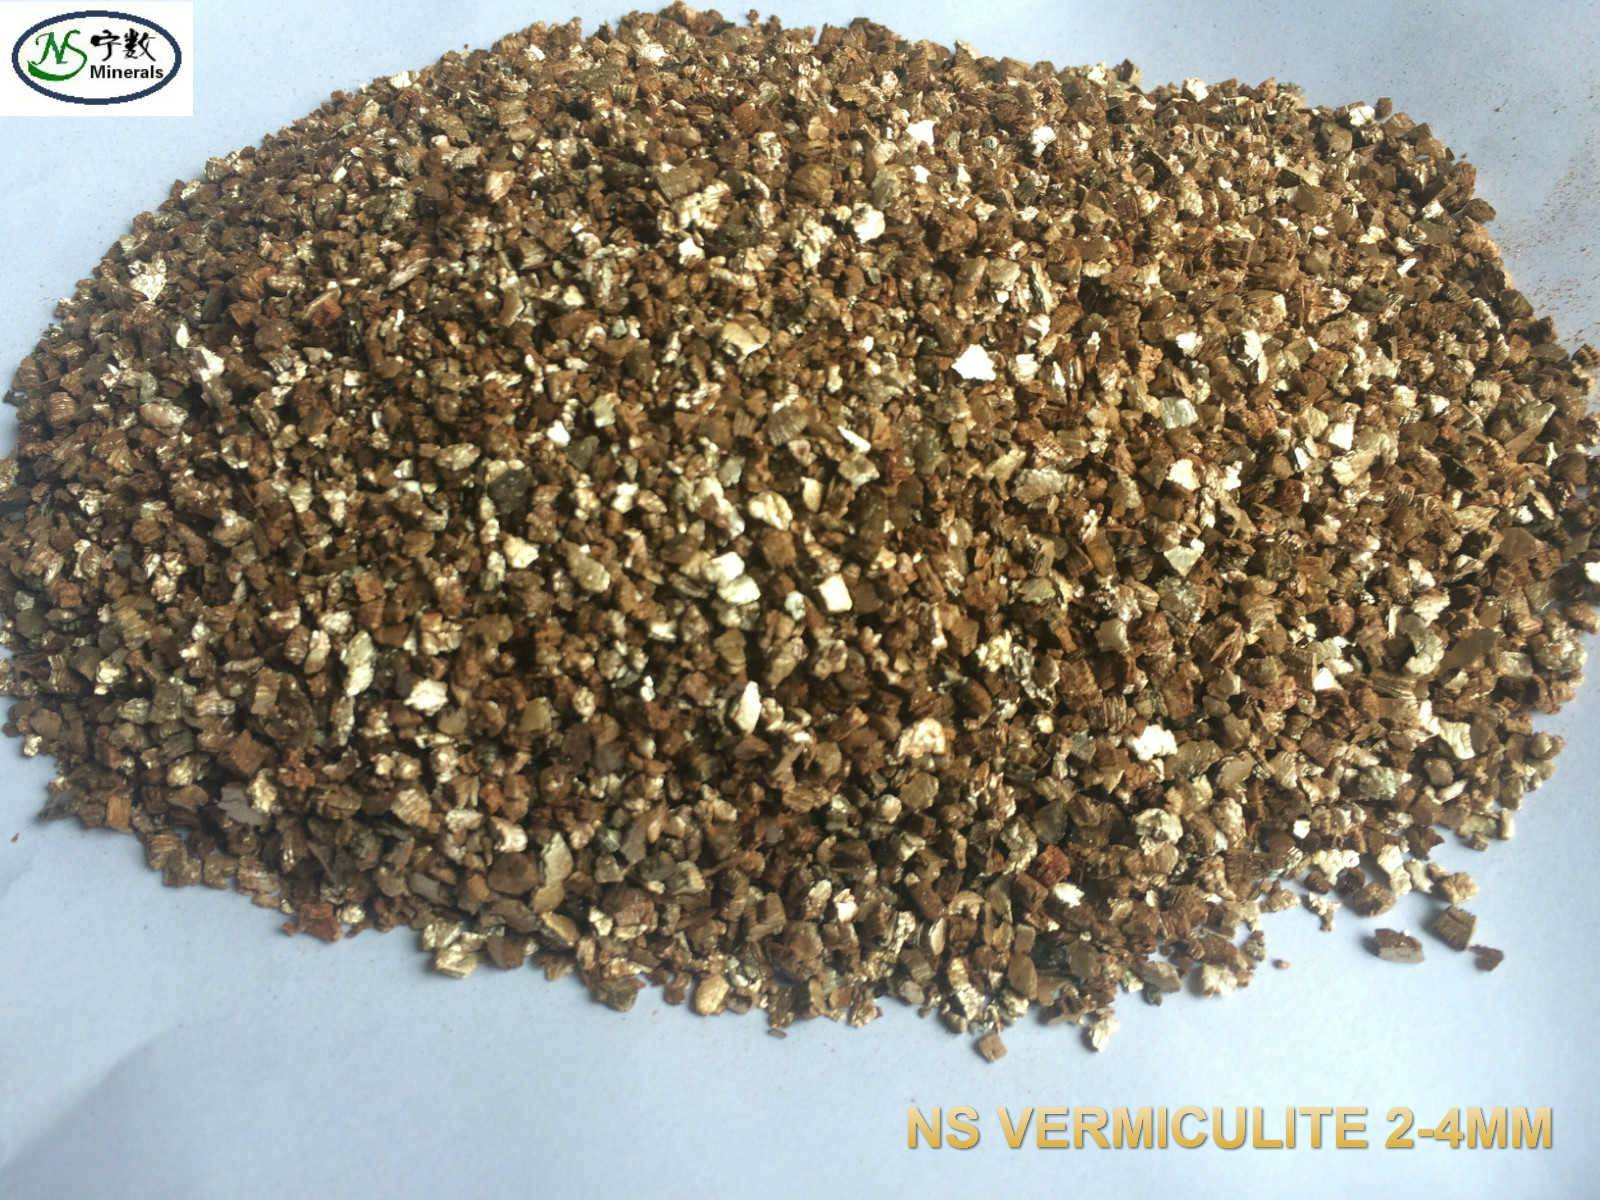 Expanded Vermiculite for horticulture